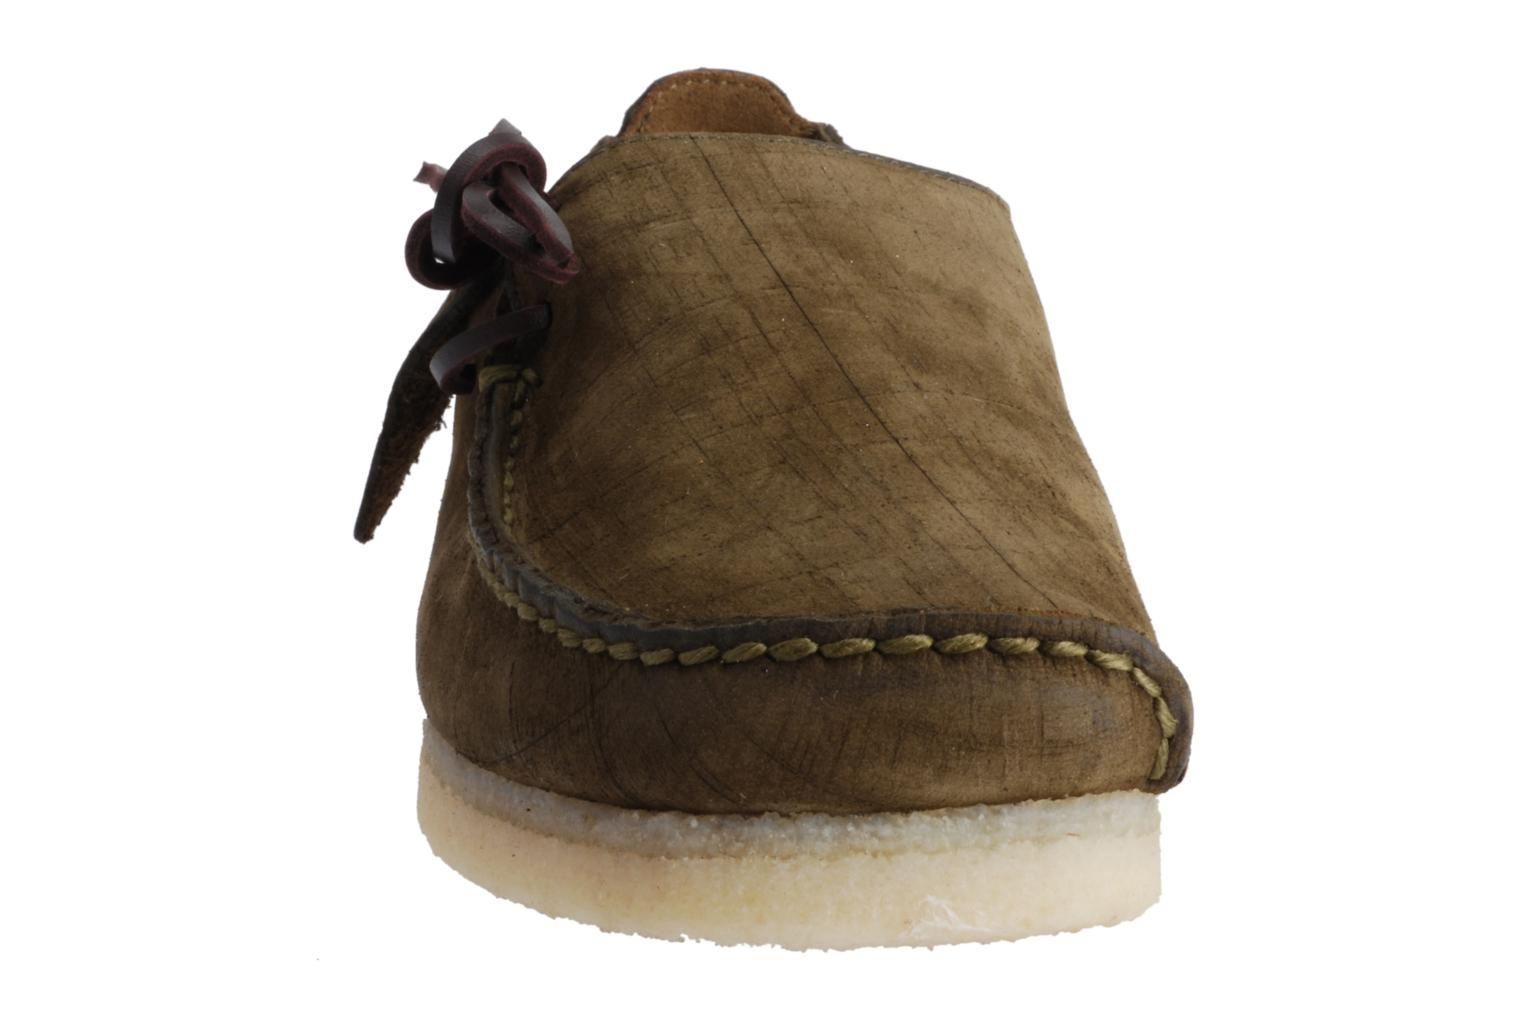 Clarks Originals Lugger Lace Up Shoes In Brown At Sarenza